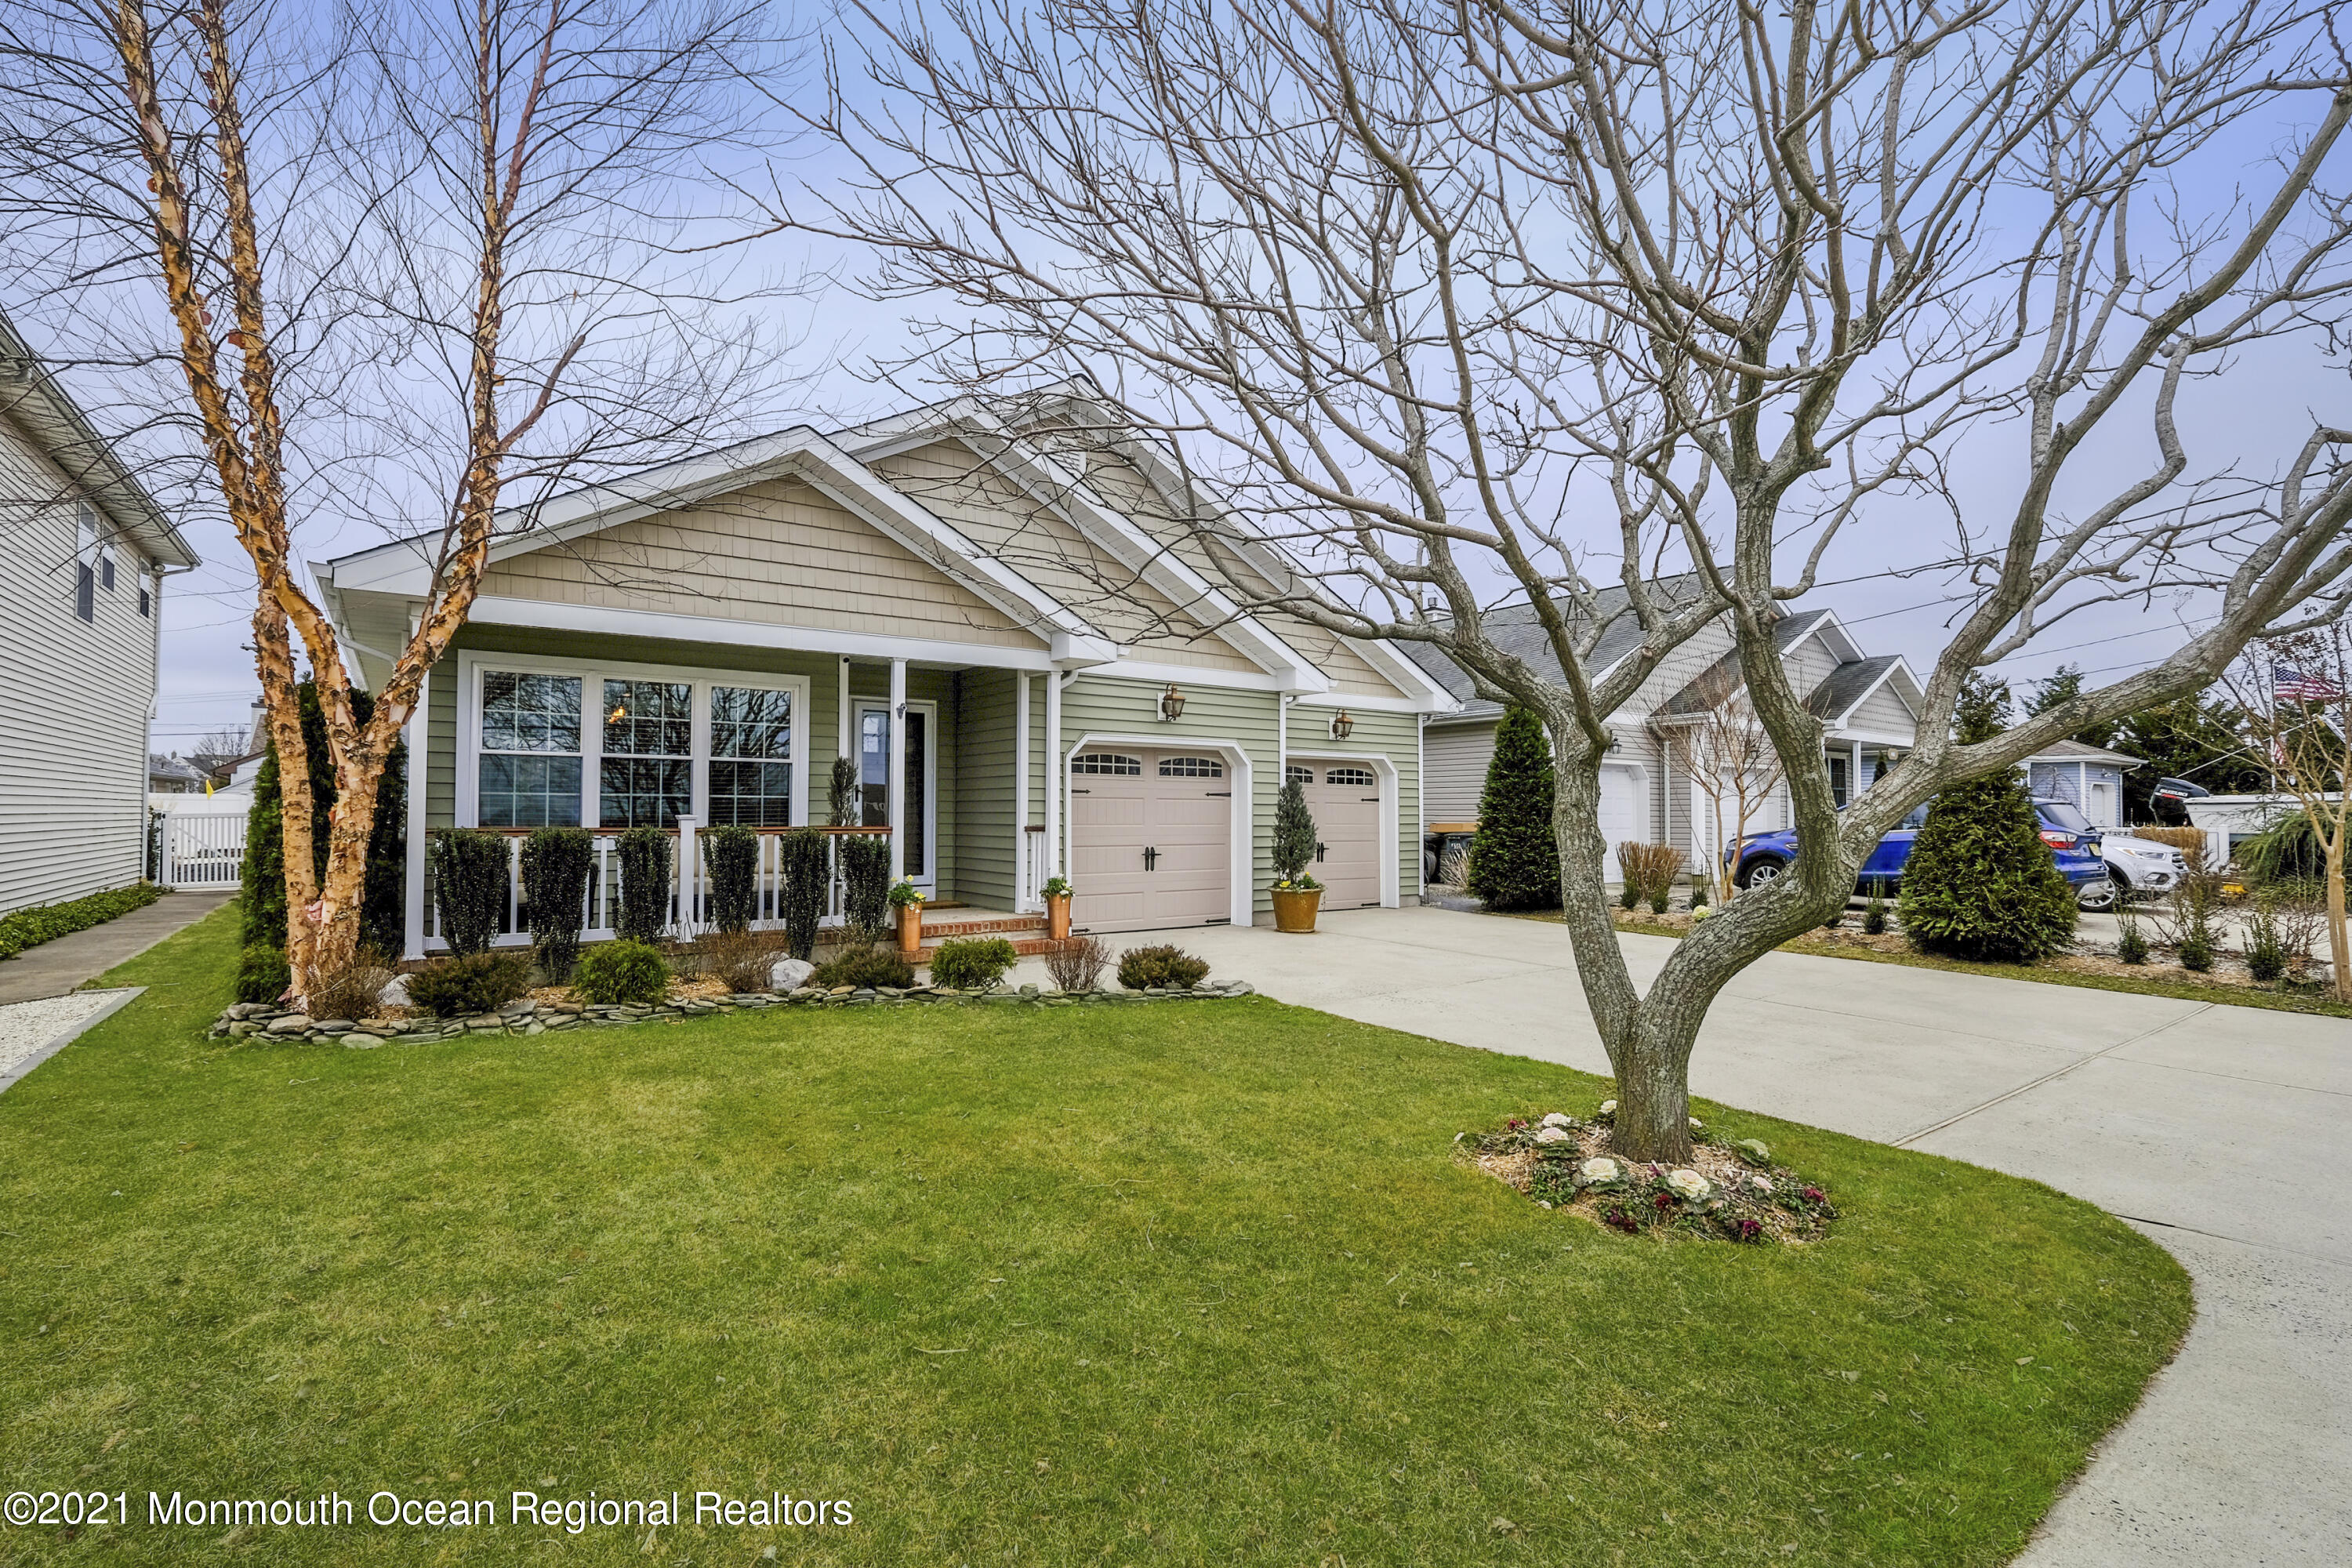 414 Broadway, Point Pleasant Beach, New Jersey 08742, 3 Bedrooms Bedrooms, ,2 BathroomsBathrooms,Single Family,For Sale,414 Broadway,1,22110579